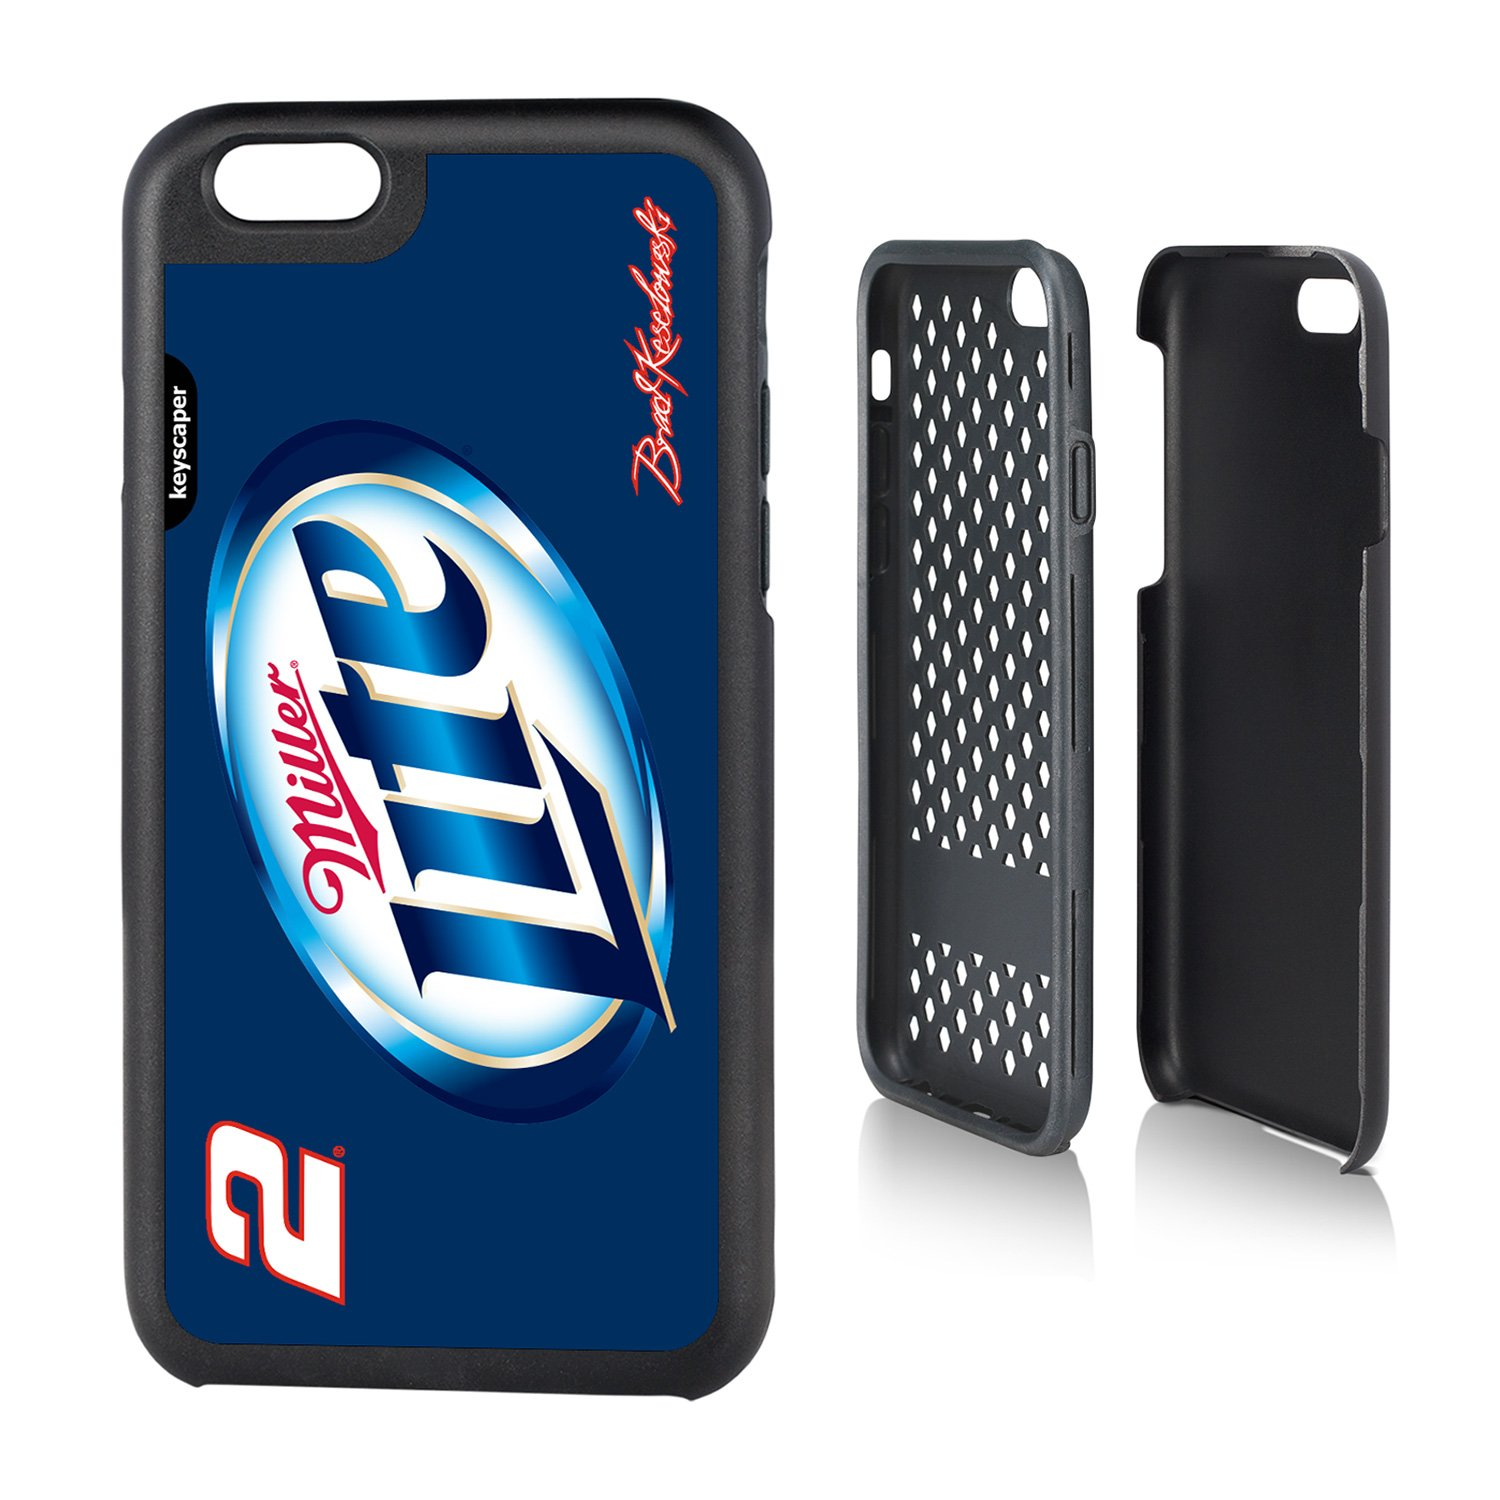 素晴らしい品質 Brad The Keselowski by iPhone 6 Apple & iPhone 6s頑丈なケースOfficially Licensed by Nascar For The Apple iPhone 6 by Keyscaper ®耐久性2層保護衝撃吸収 B00O4PLCPO, コレカウ:66499bff --- arianechie.dominiotemporario.com